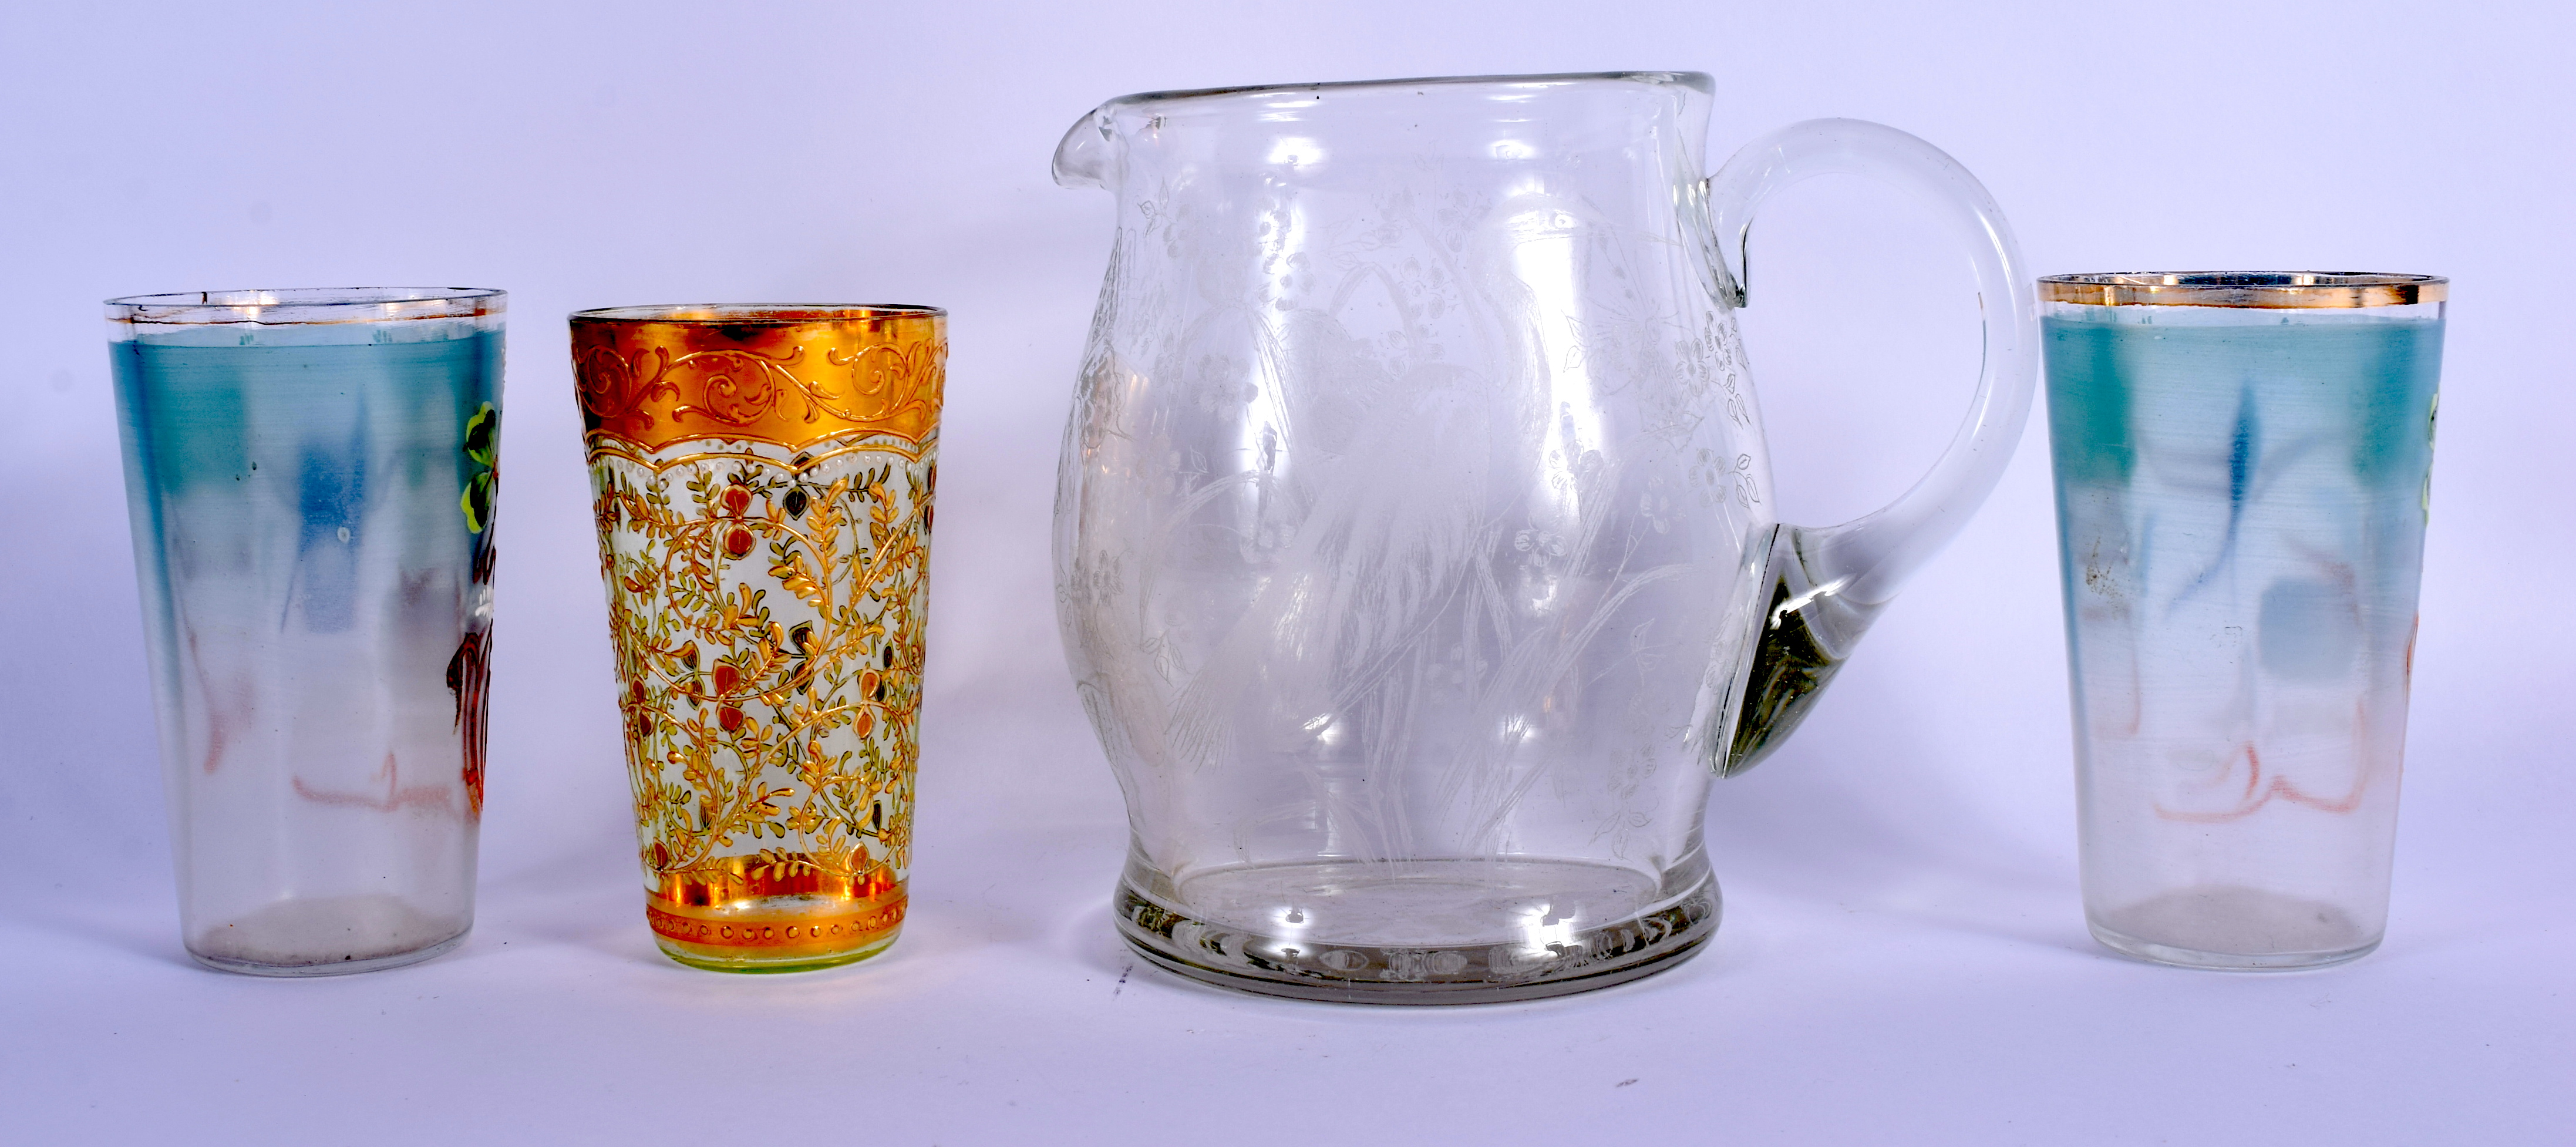 A PAIR OF VINTAGE ENAMELLED CONTINENTAL CUPS together with a jug etc. (4) - Image 2 of 4